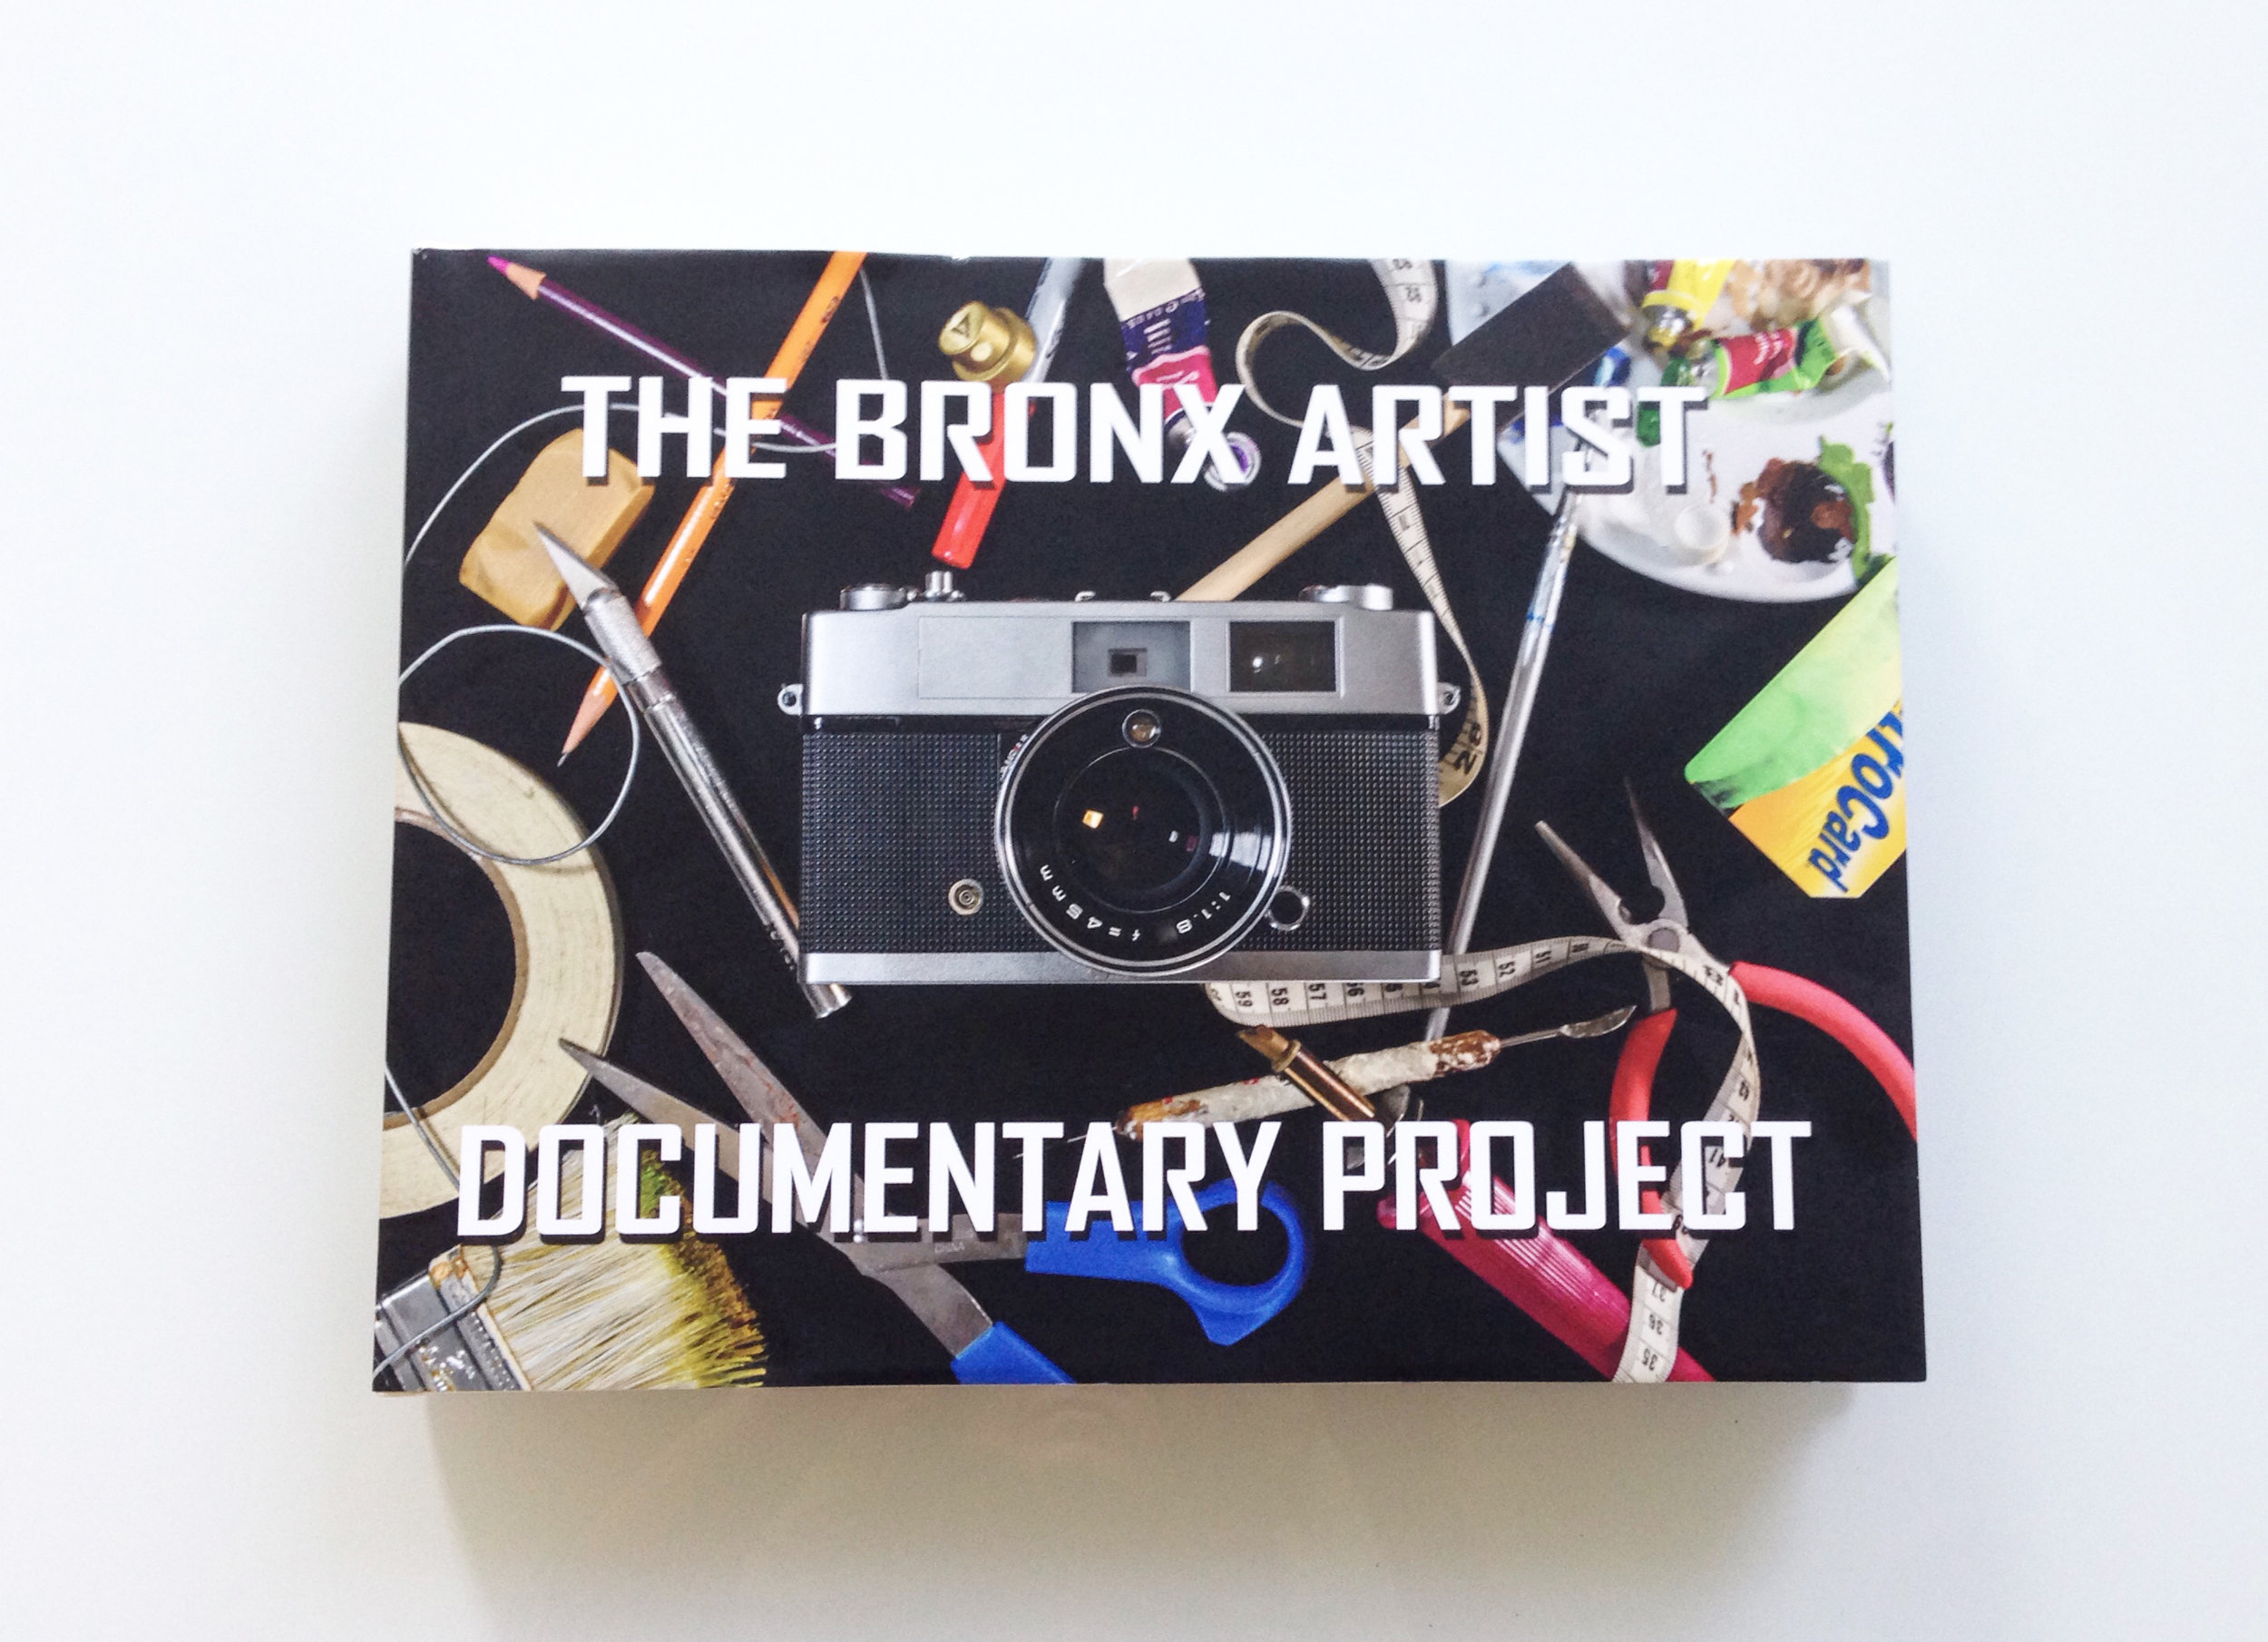 The book for The Bronx Artist Documentary Documentary Project.